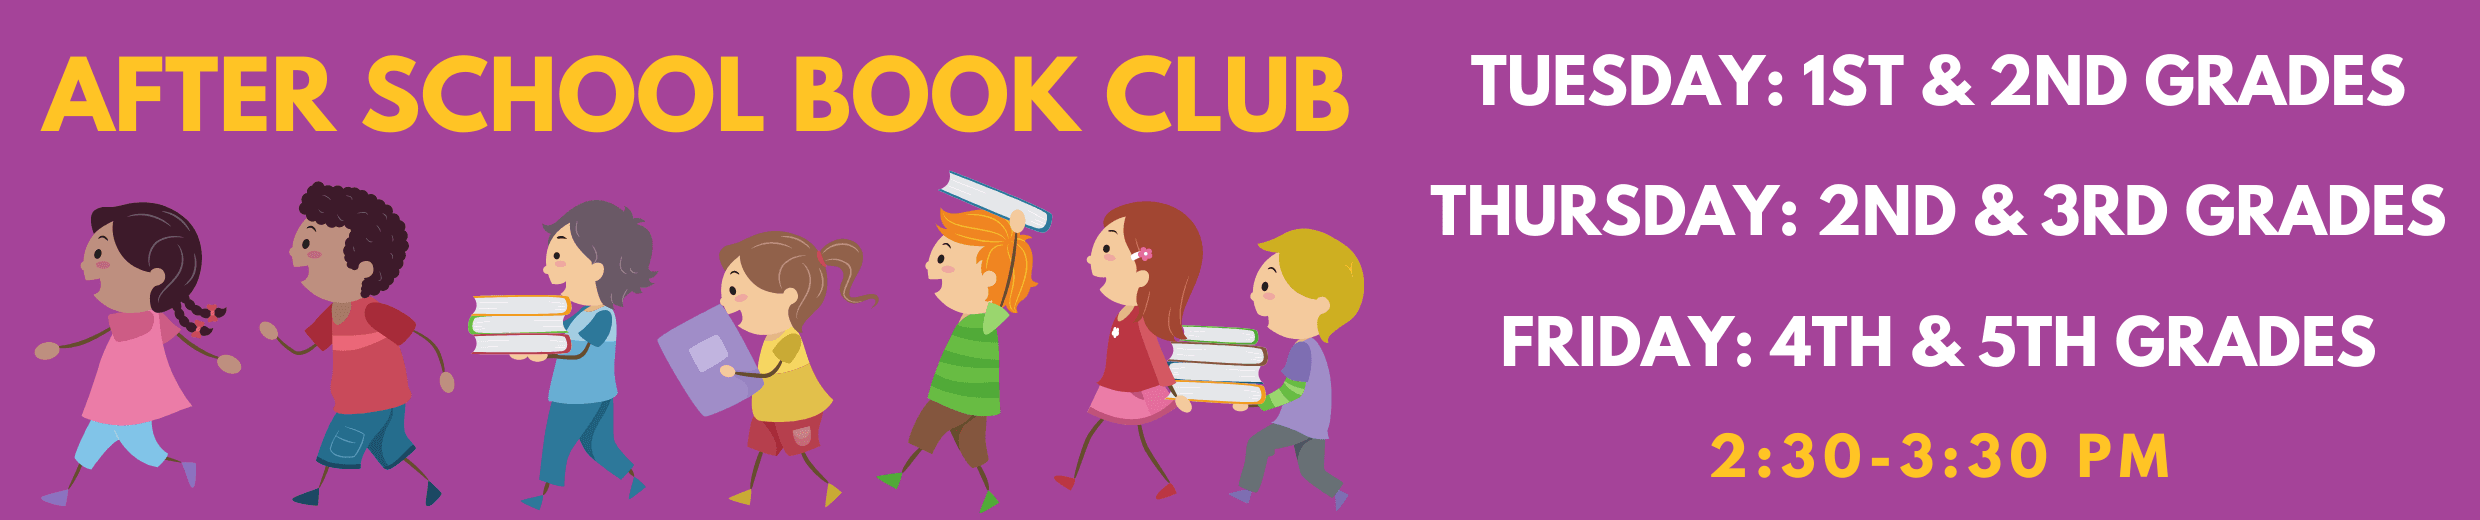 Web AfterSchool book club banner with kids walking